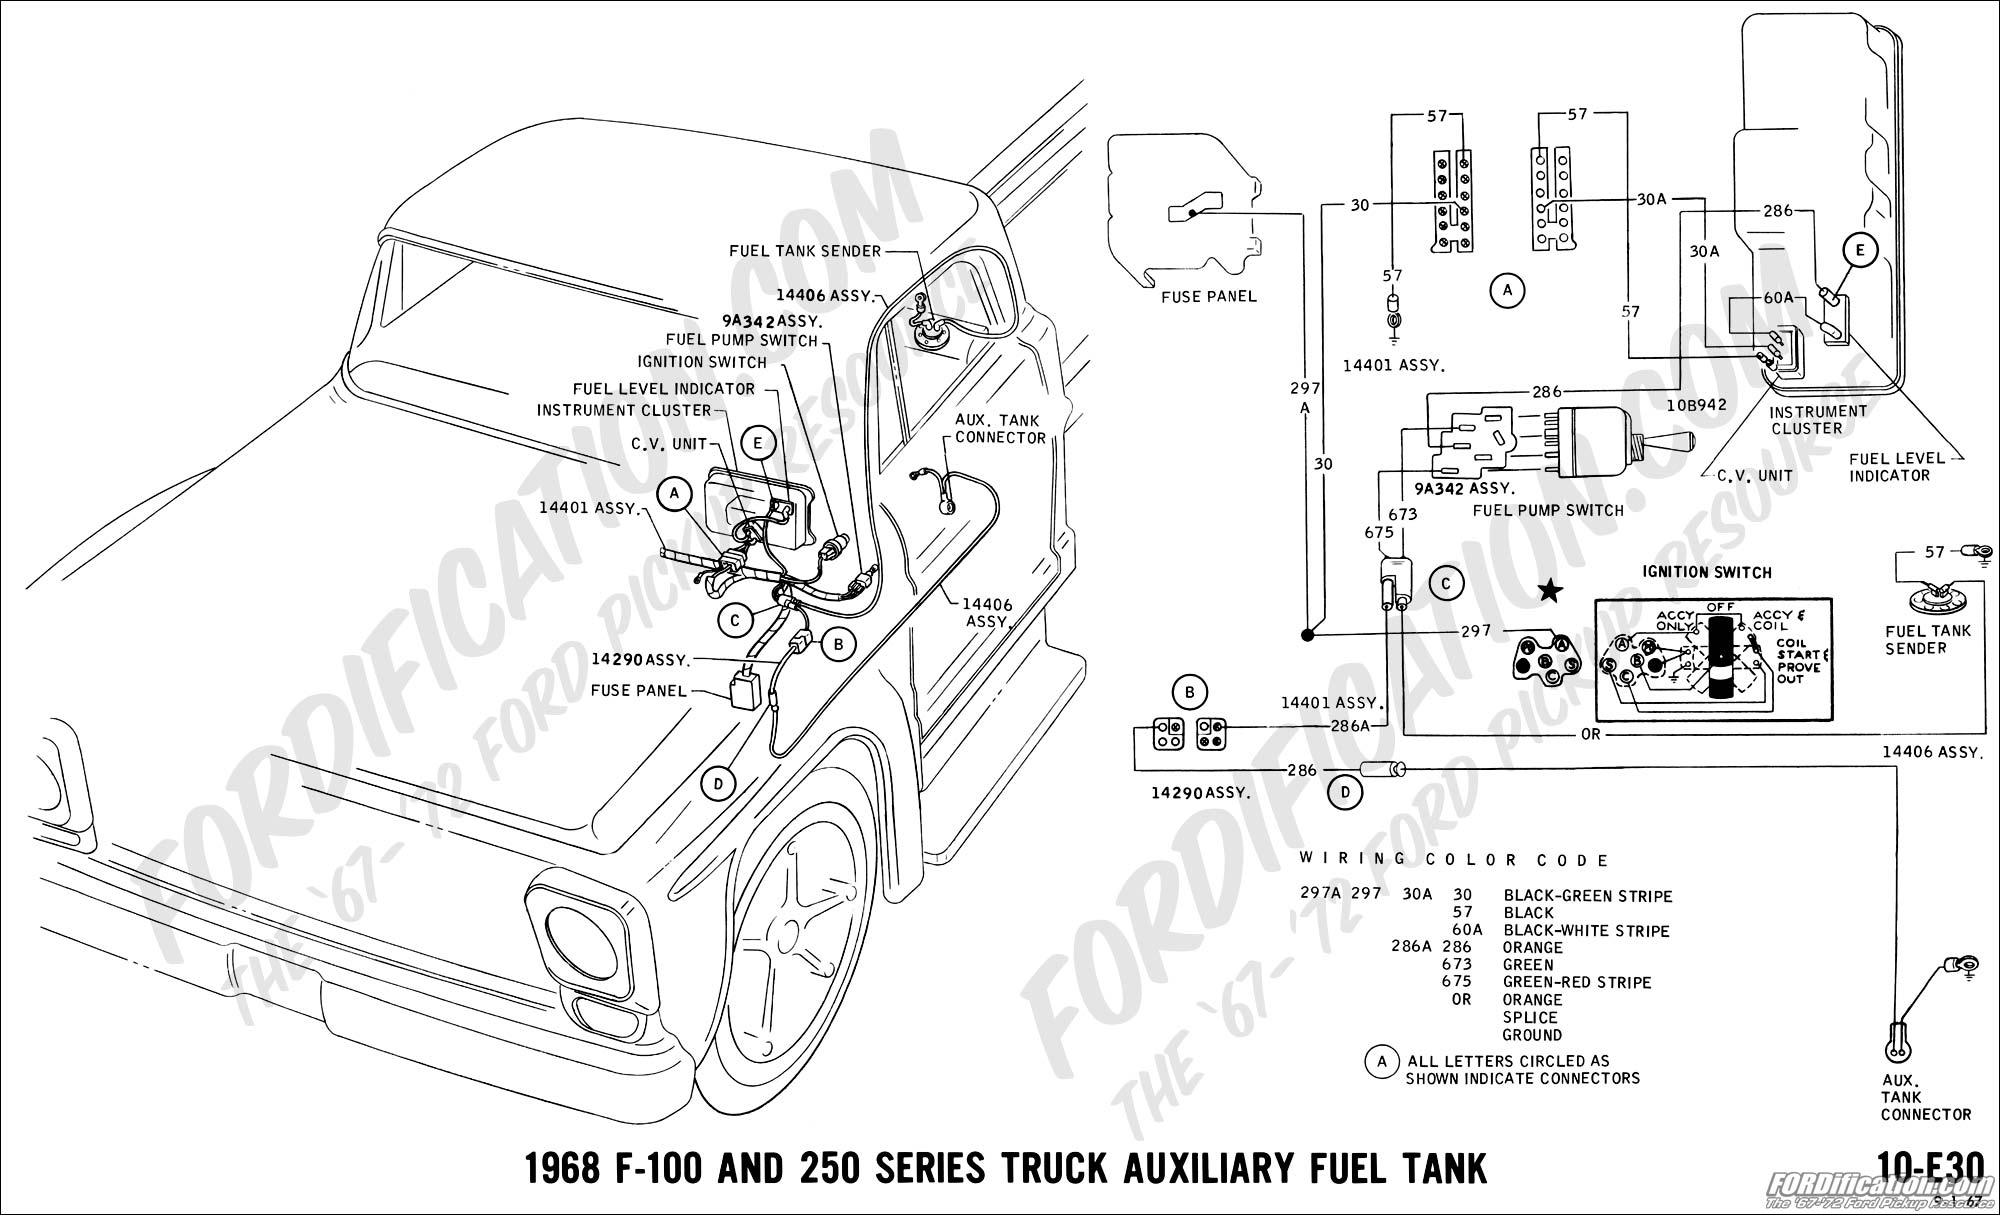 Fuel Gauge wiring, 68 F250 - Ford Truck Enthusiasts Forums